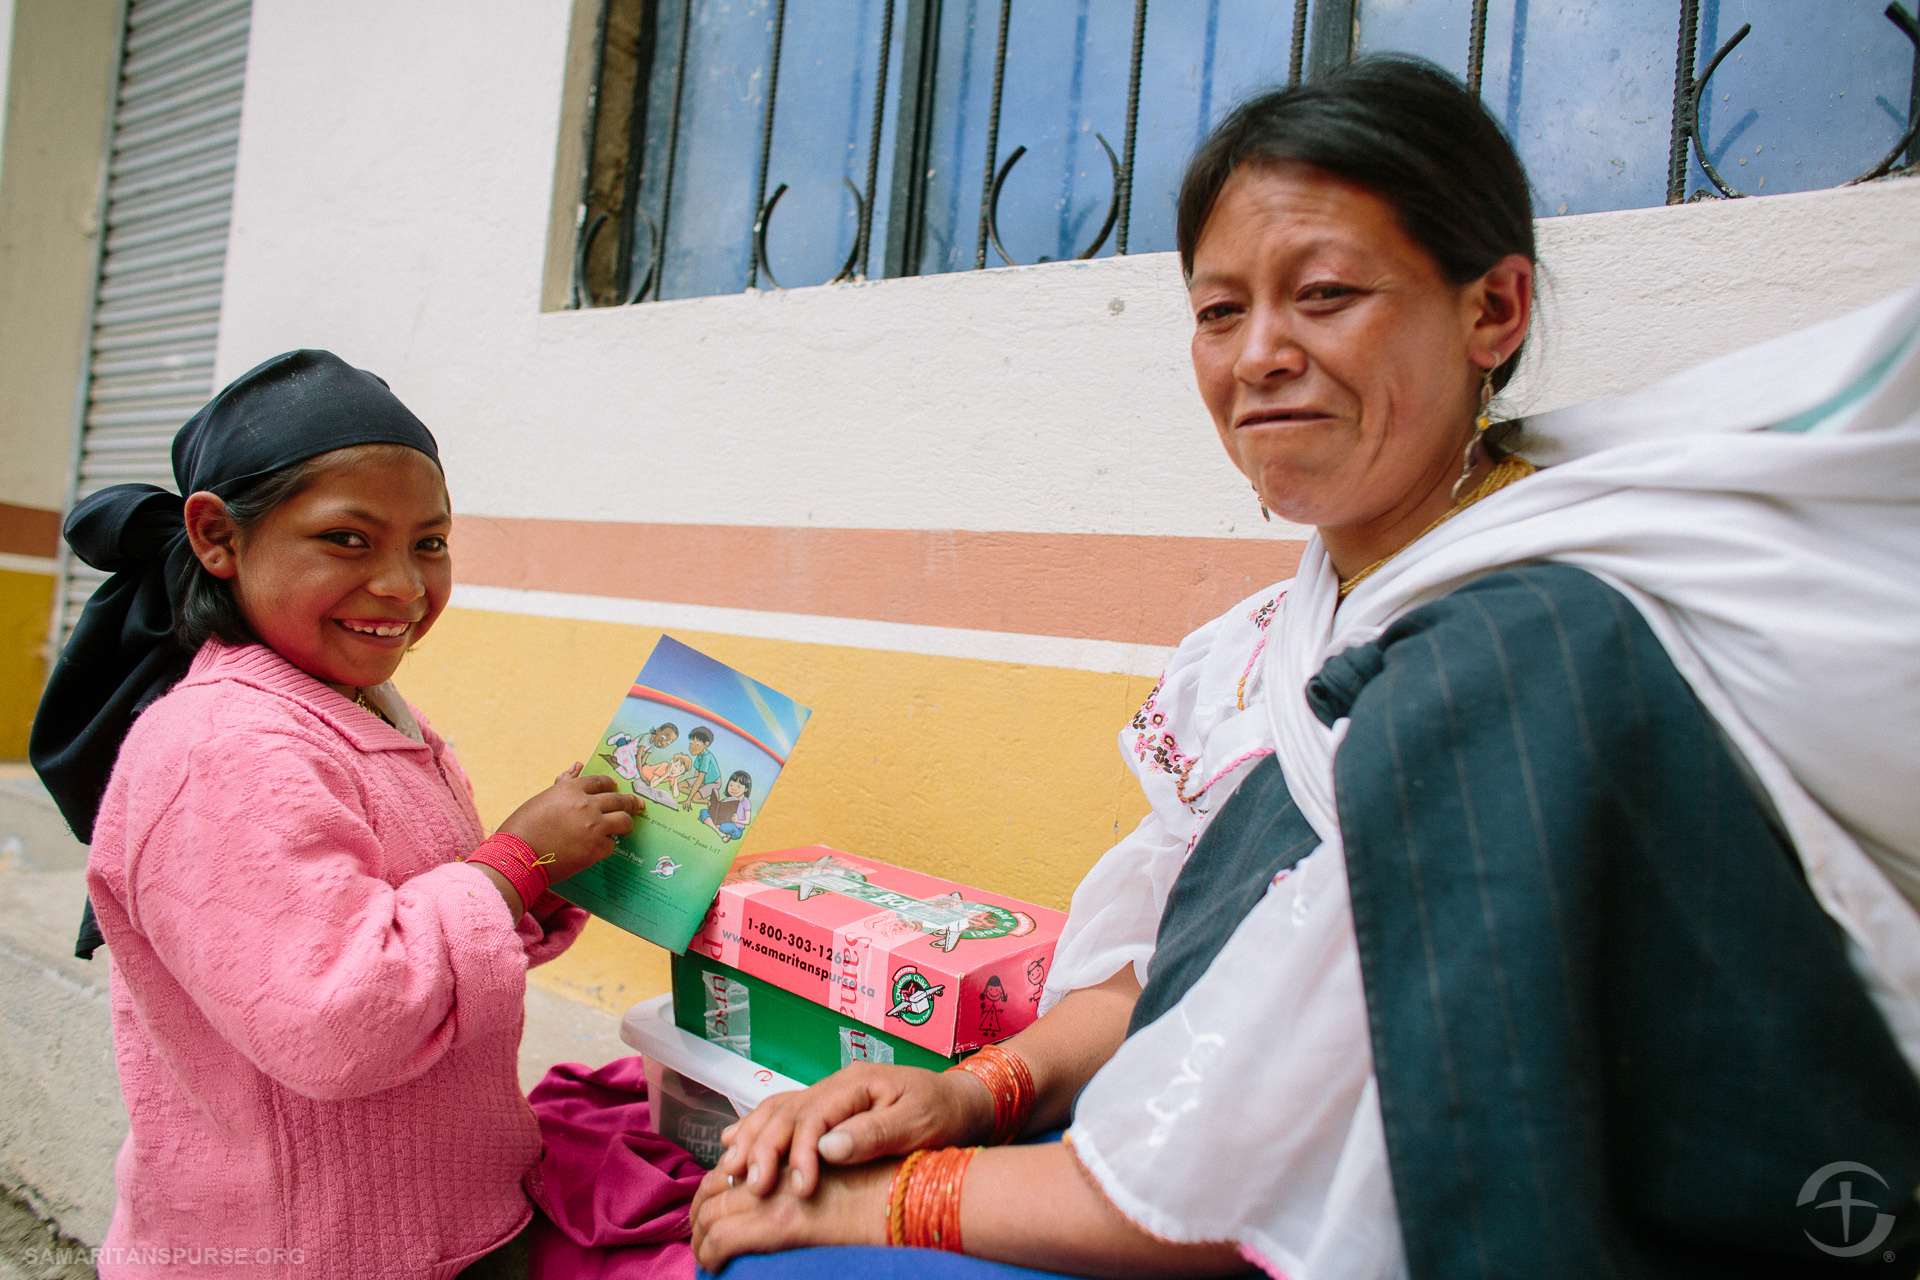 A little girl looks at the reading material offered with her shoe box gift. Each child received a booklet explaining that Jesus is the greatest gift of all. Afterward, many children have the opportunity to join a 12-week discipleship program called The Greatest Journey, where they learn more about faith in Jesus Christ and developing a deeper relationship with Him.